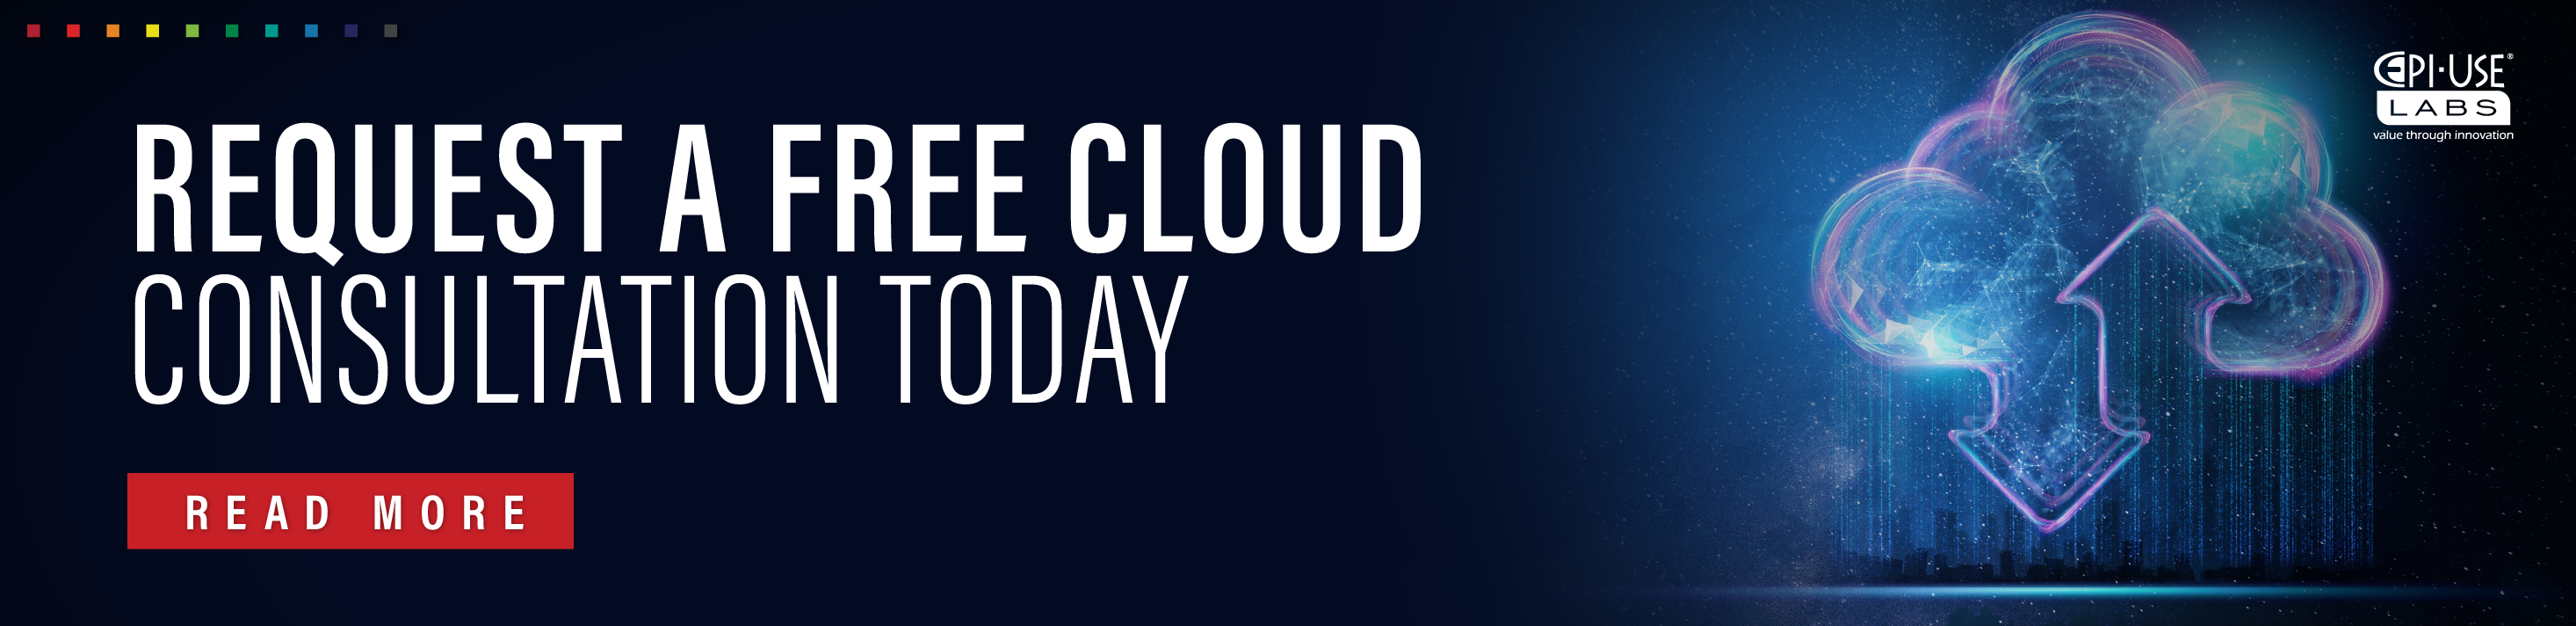 Request a free Cloud consultation